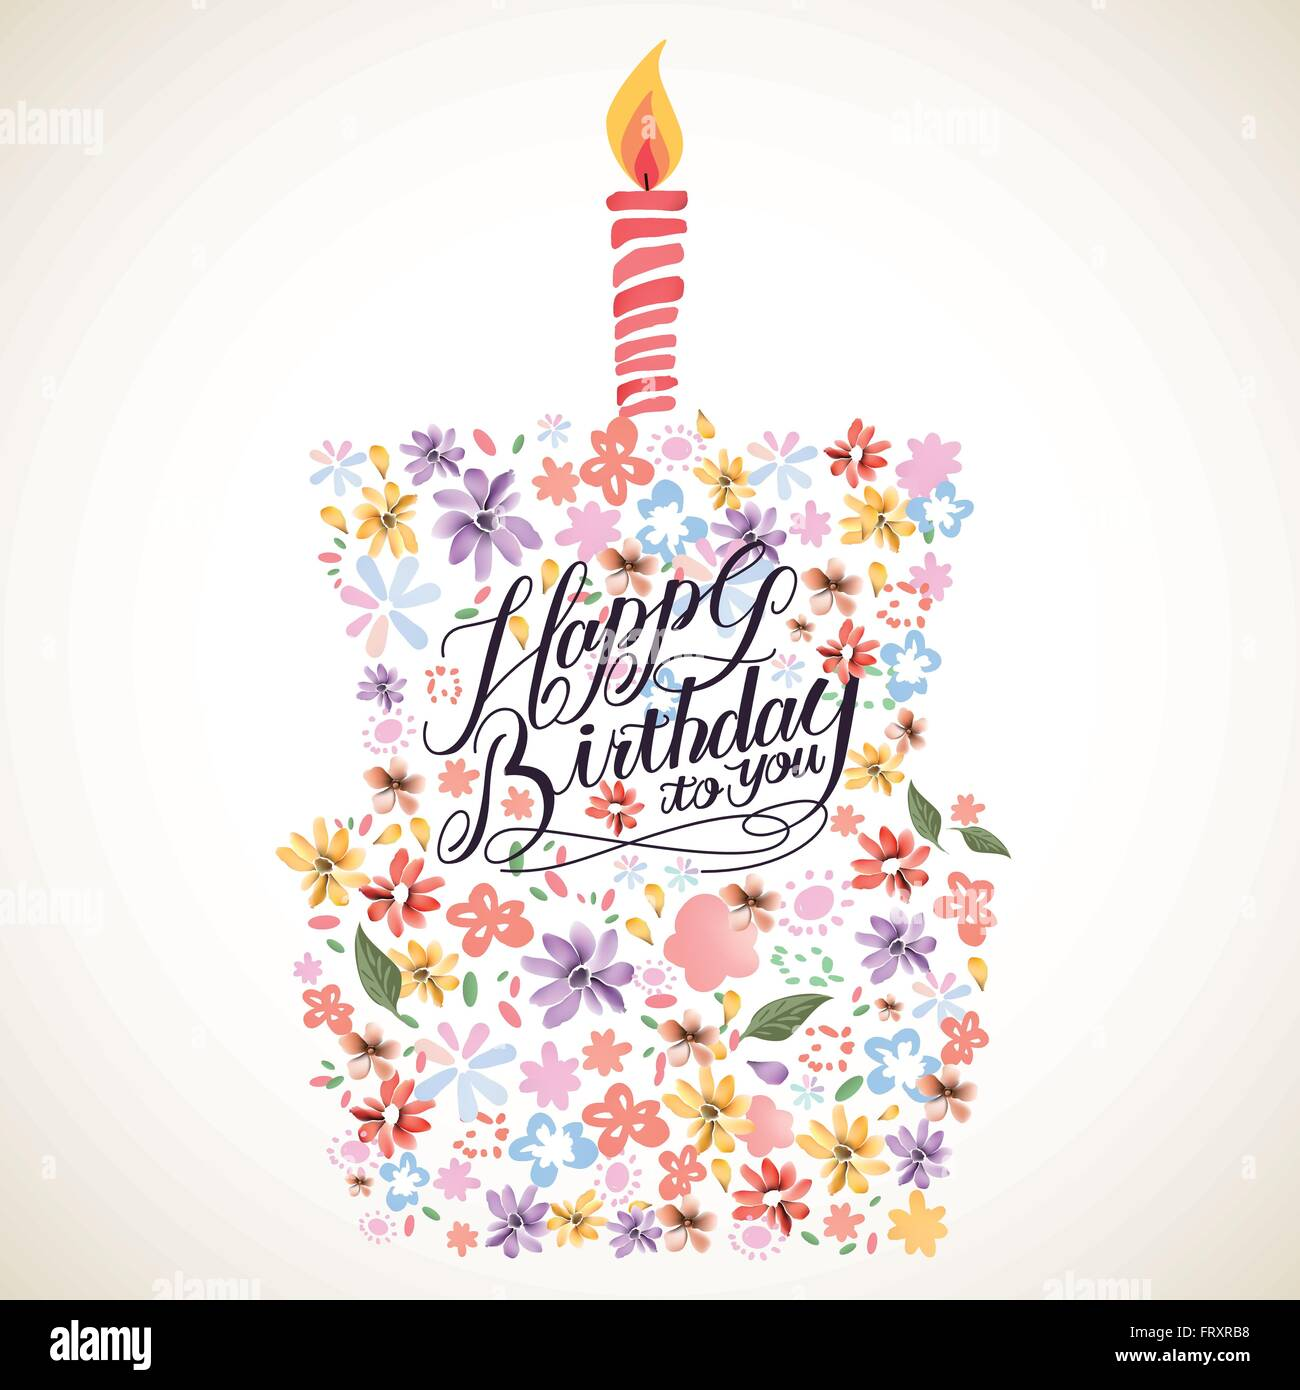 Lovely Happy Birthday Calligraphy Poster Design With